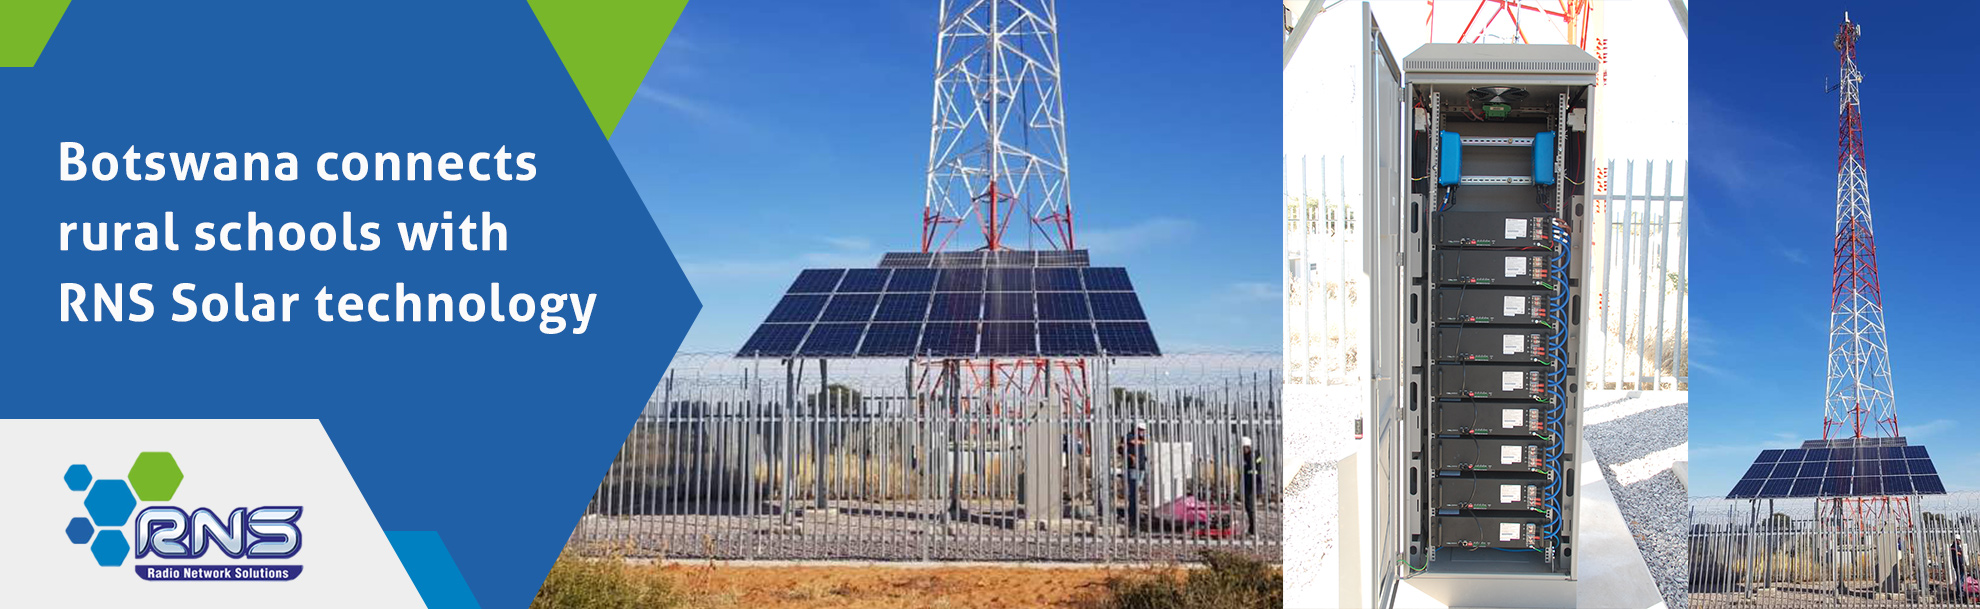 Botswana connects rural schools with RNS Solar technology